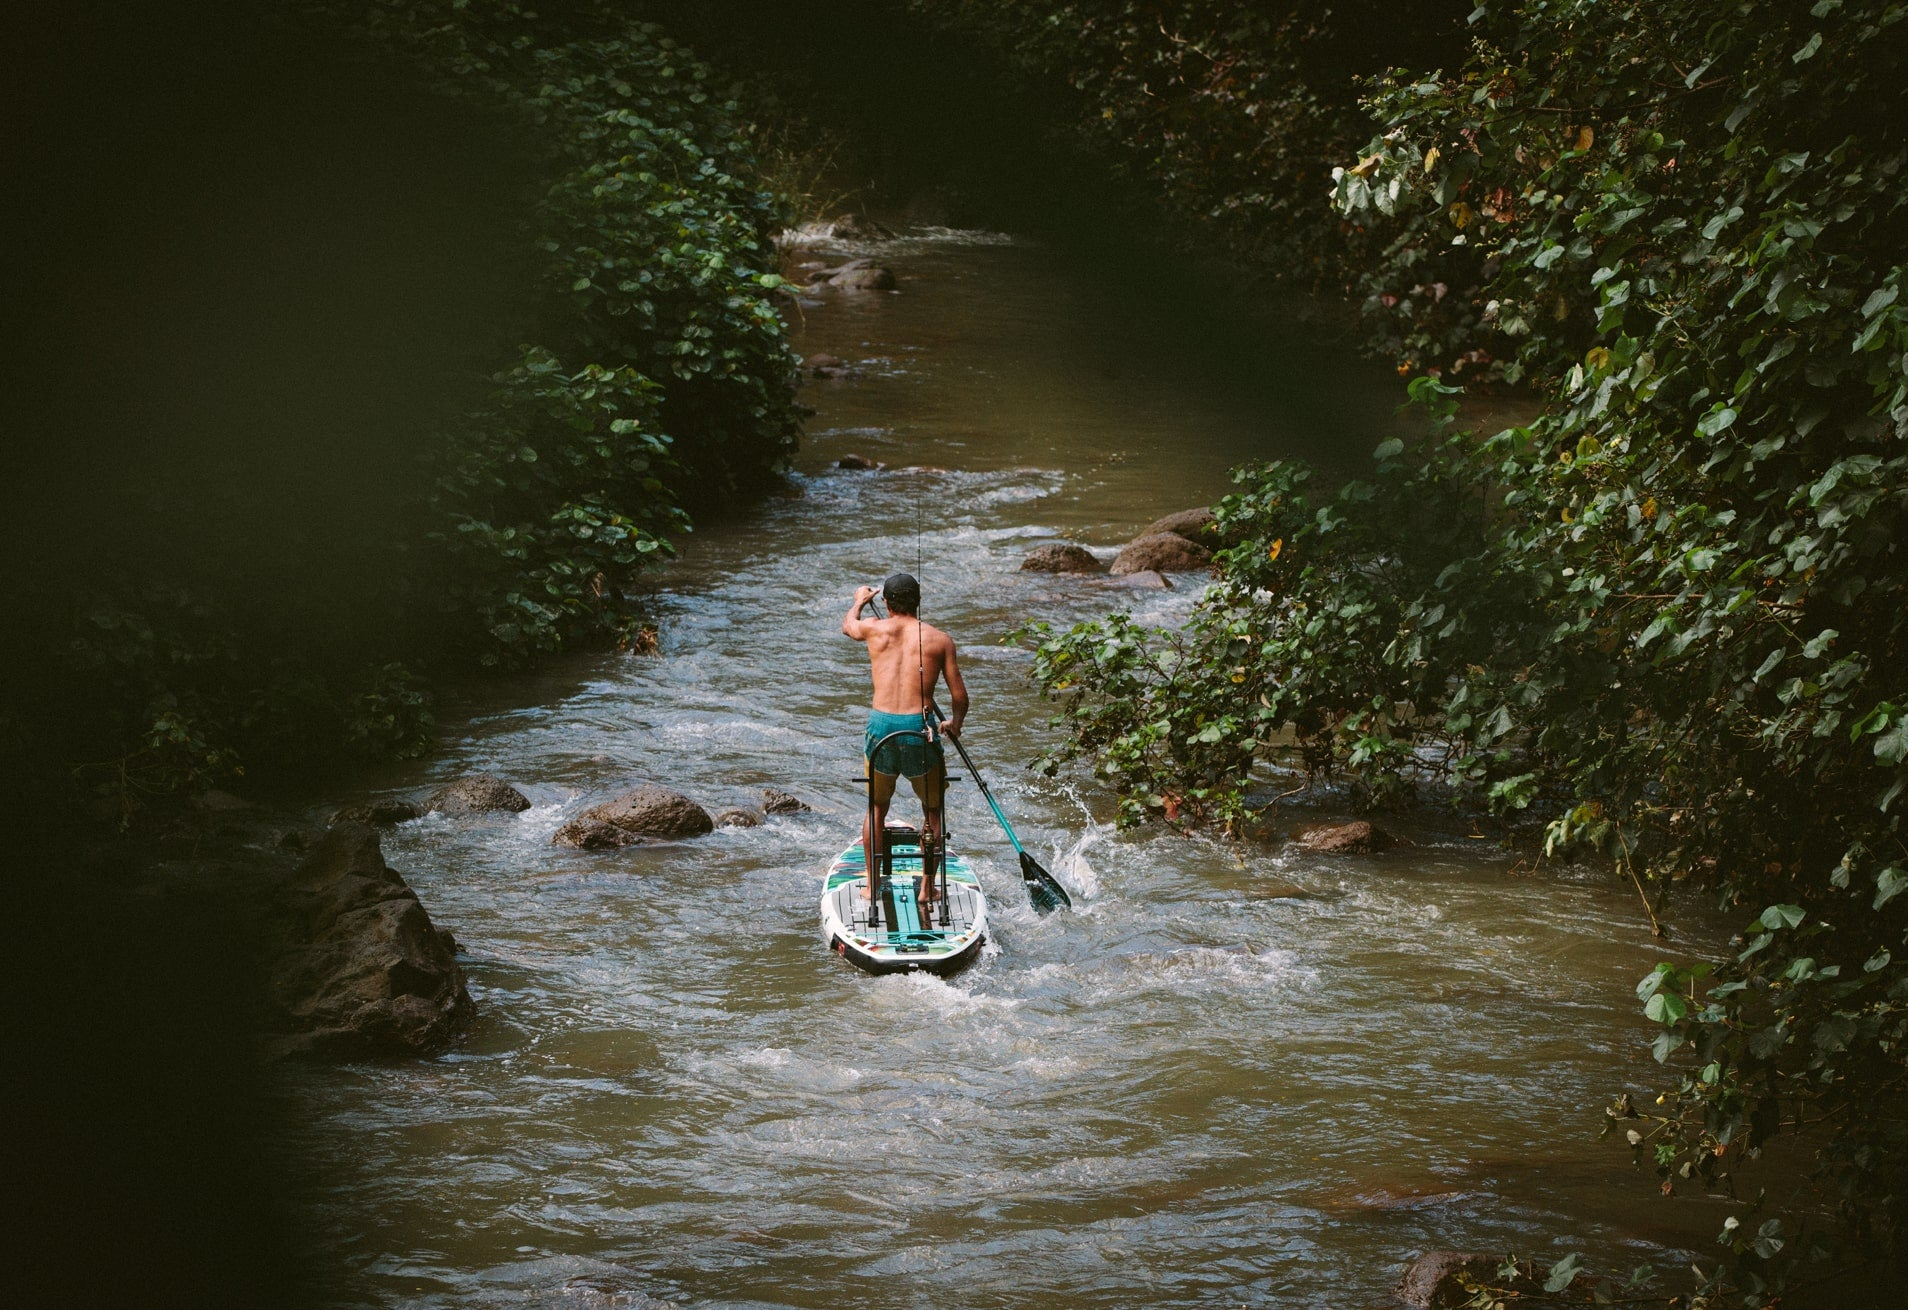 taloa crusing down river on a BOTE HD inflatable paddle board